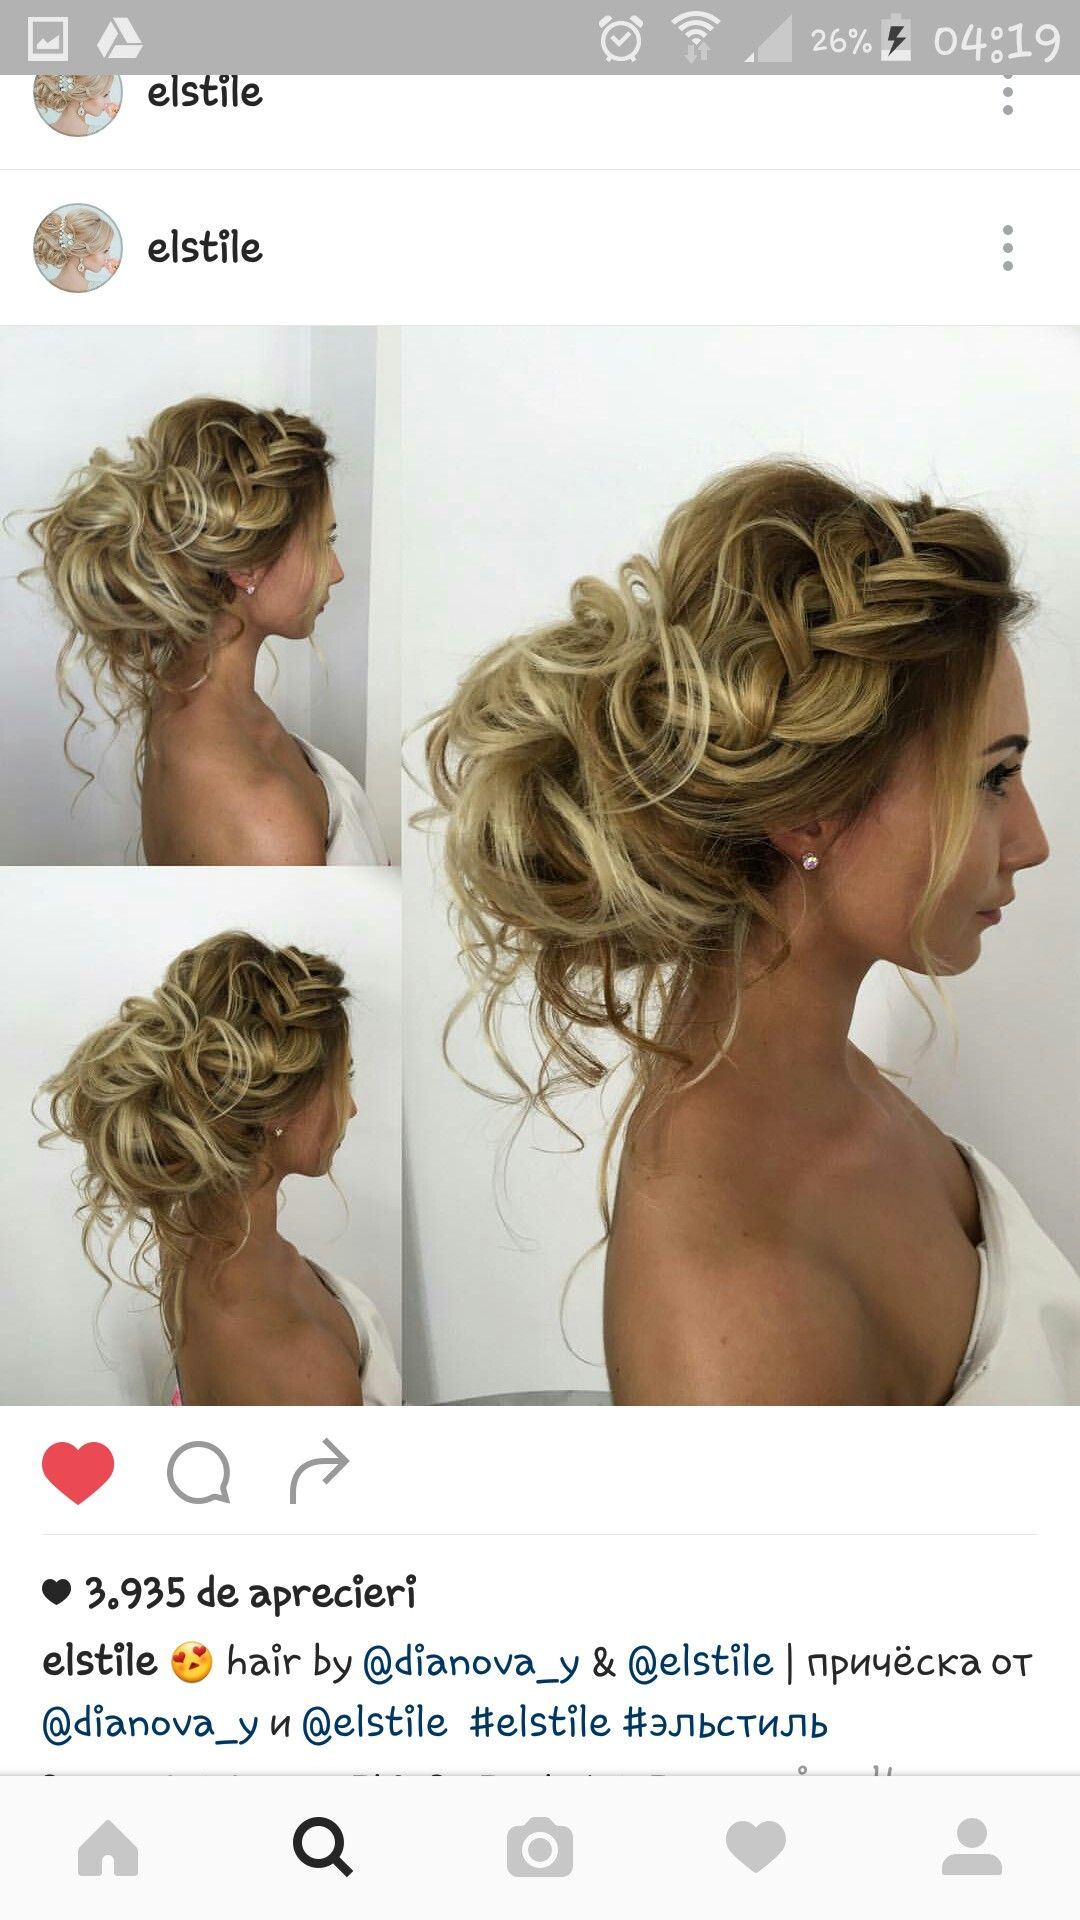 Pin by andre on Hair&Make-up | Pinterest